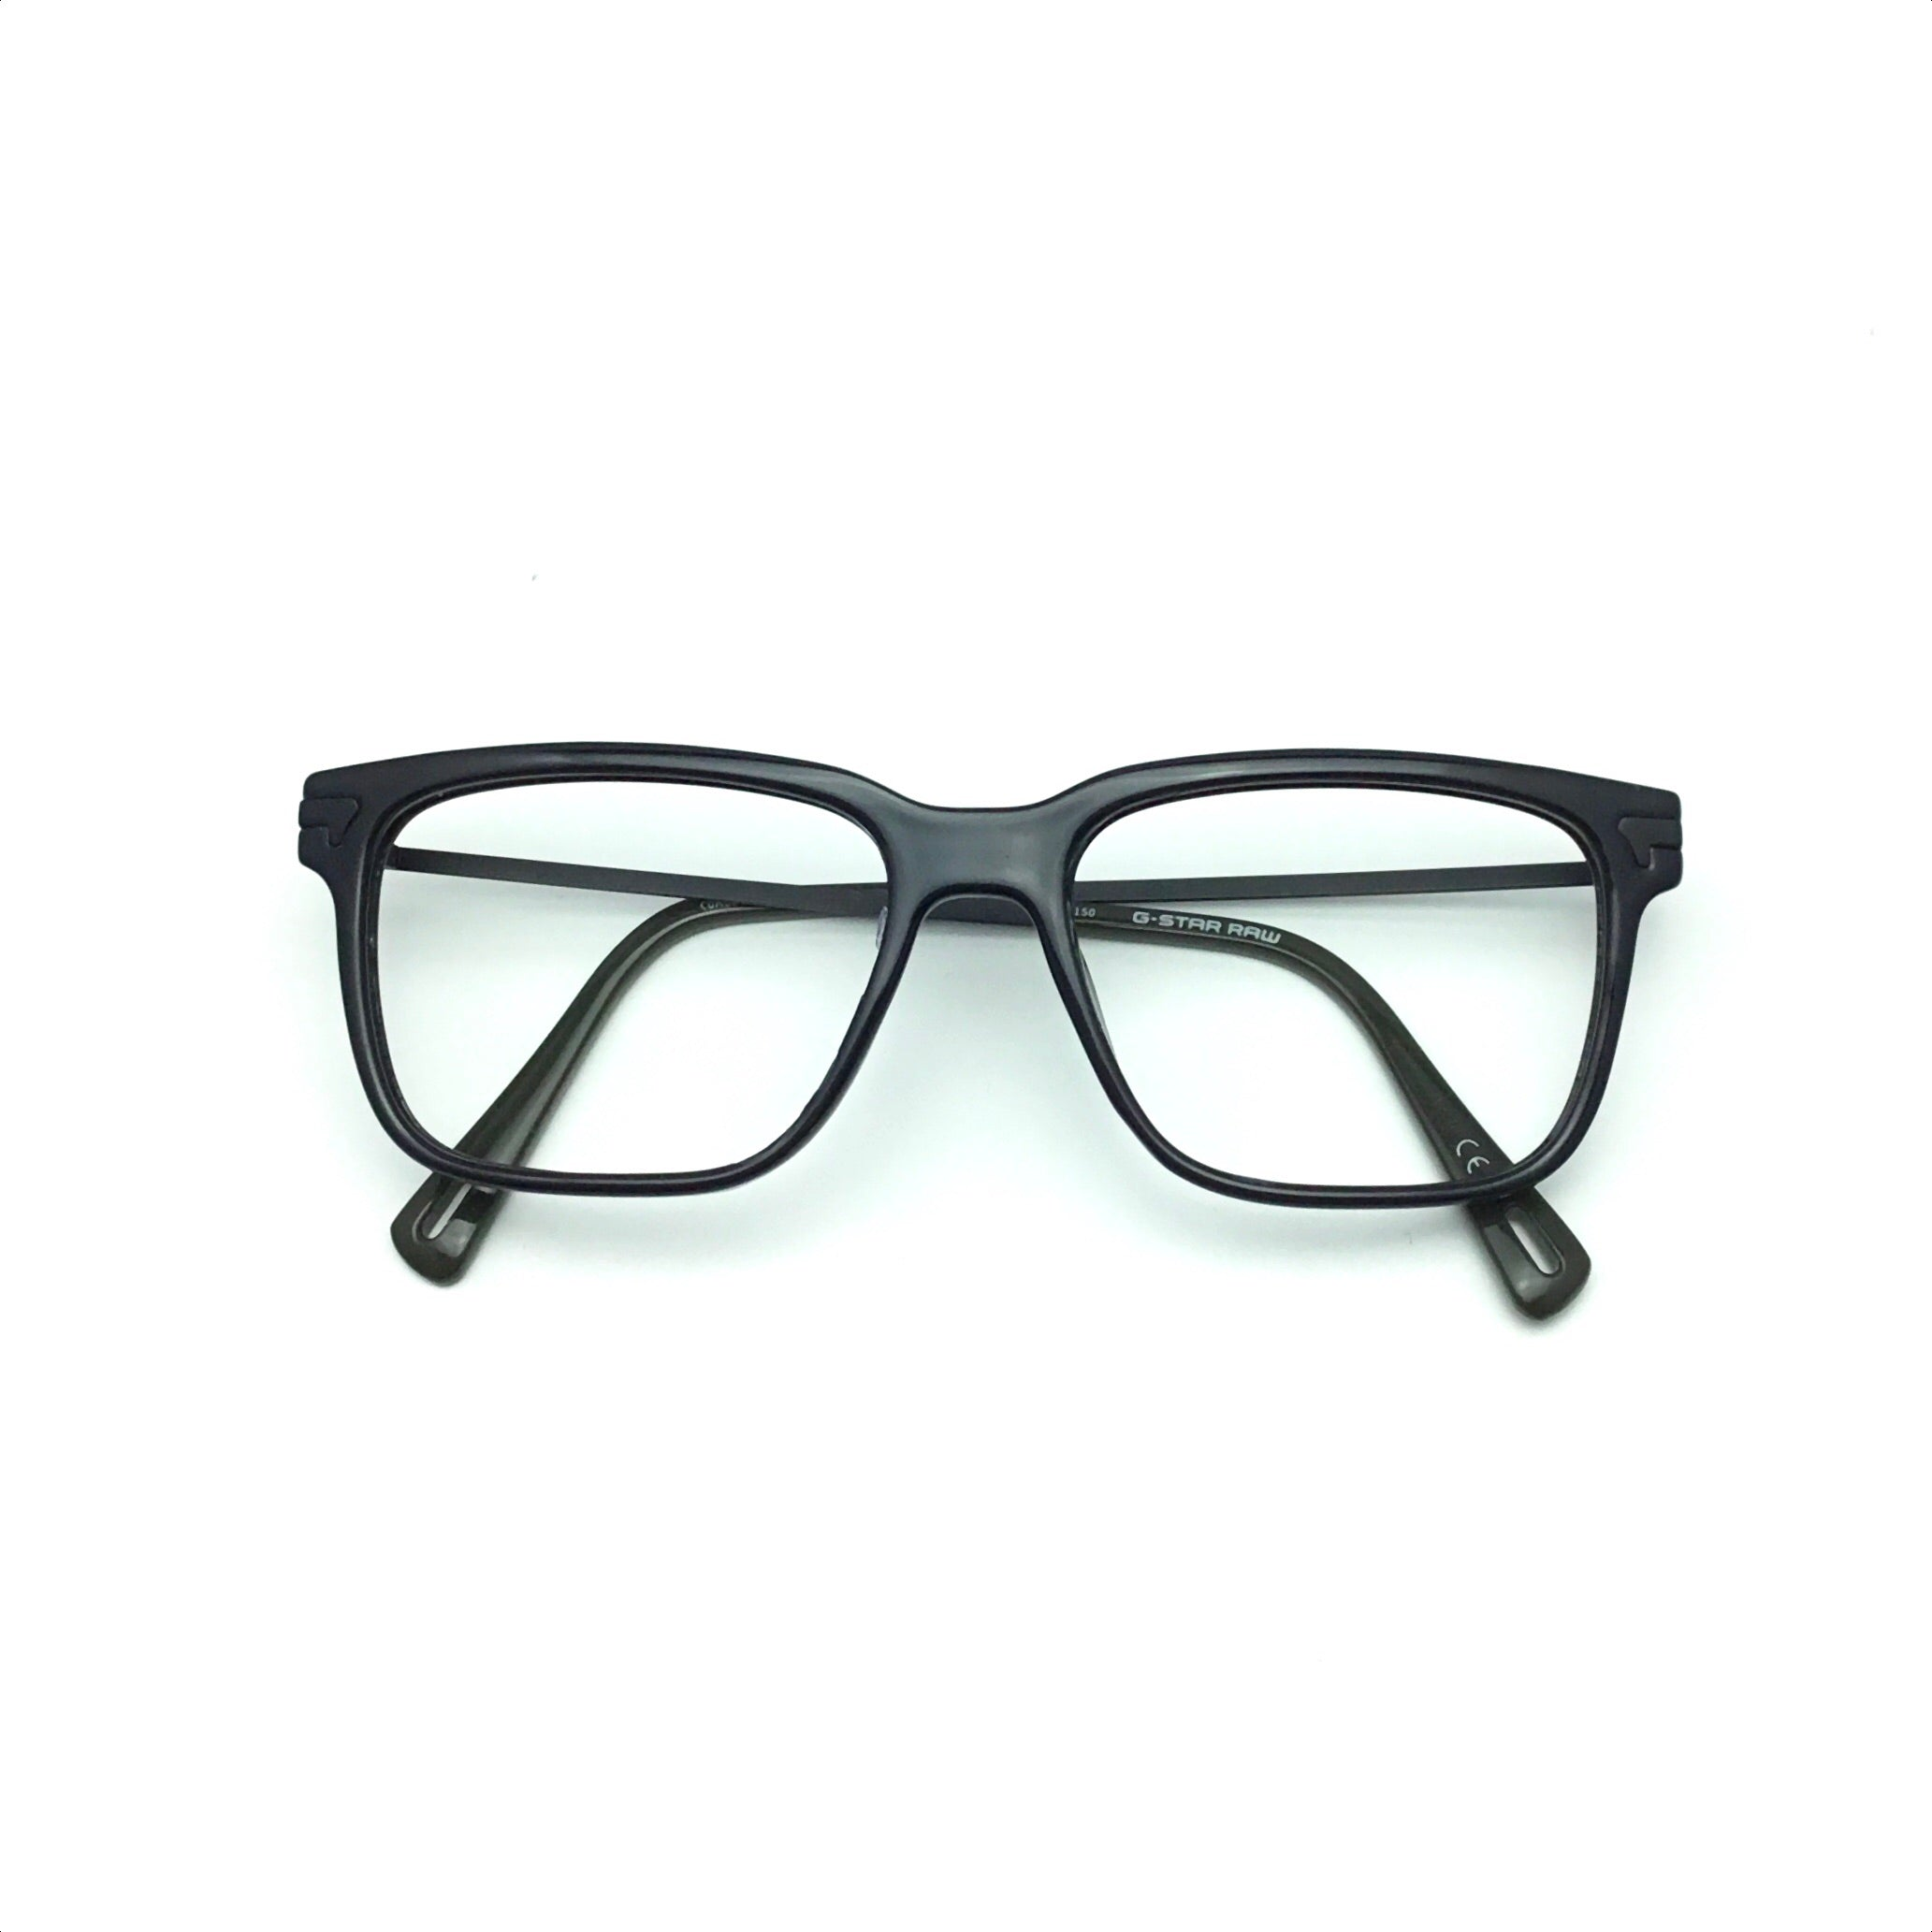 G Star Glasses $119 LARGE G4